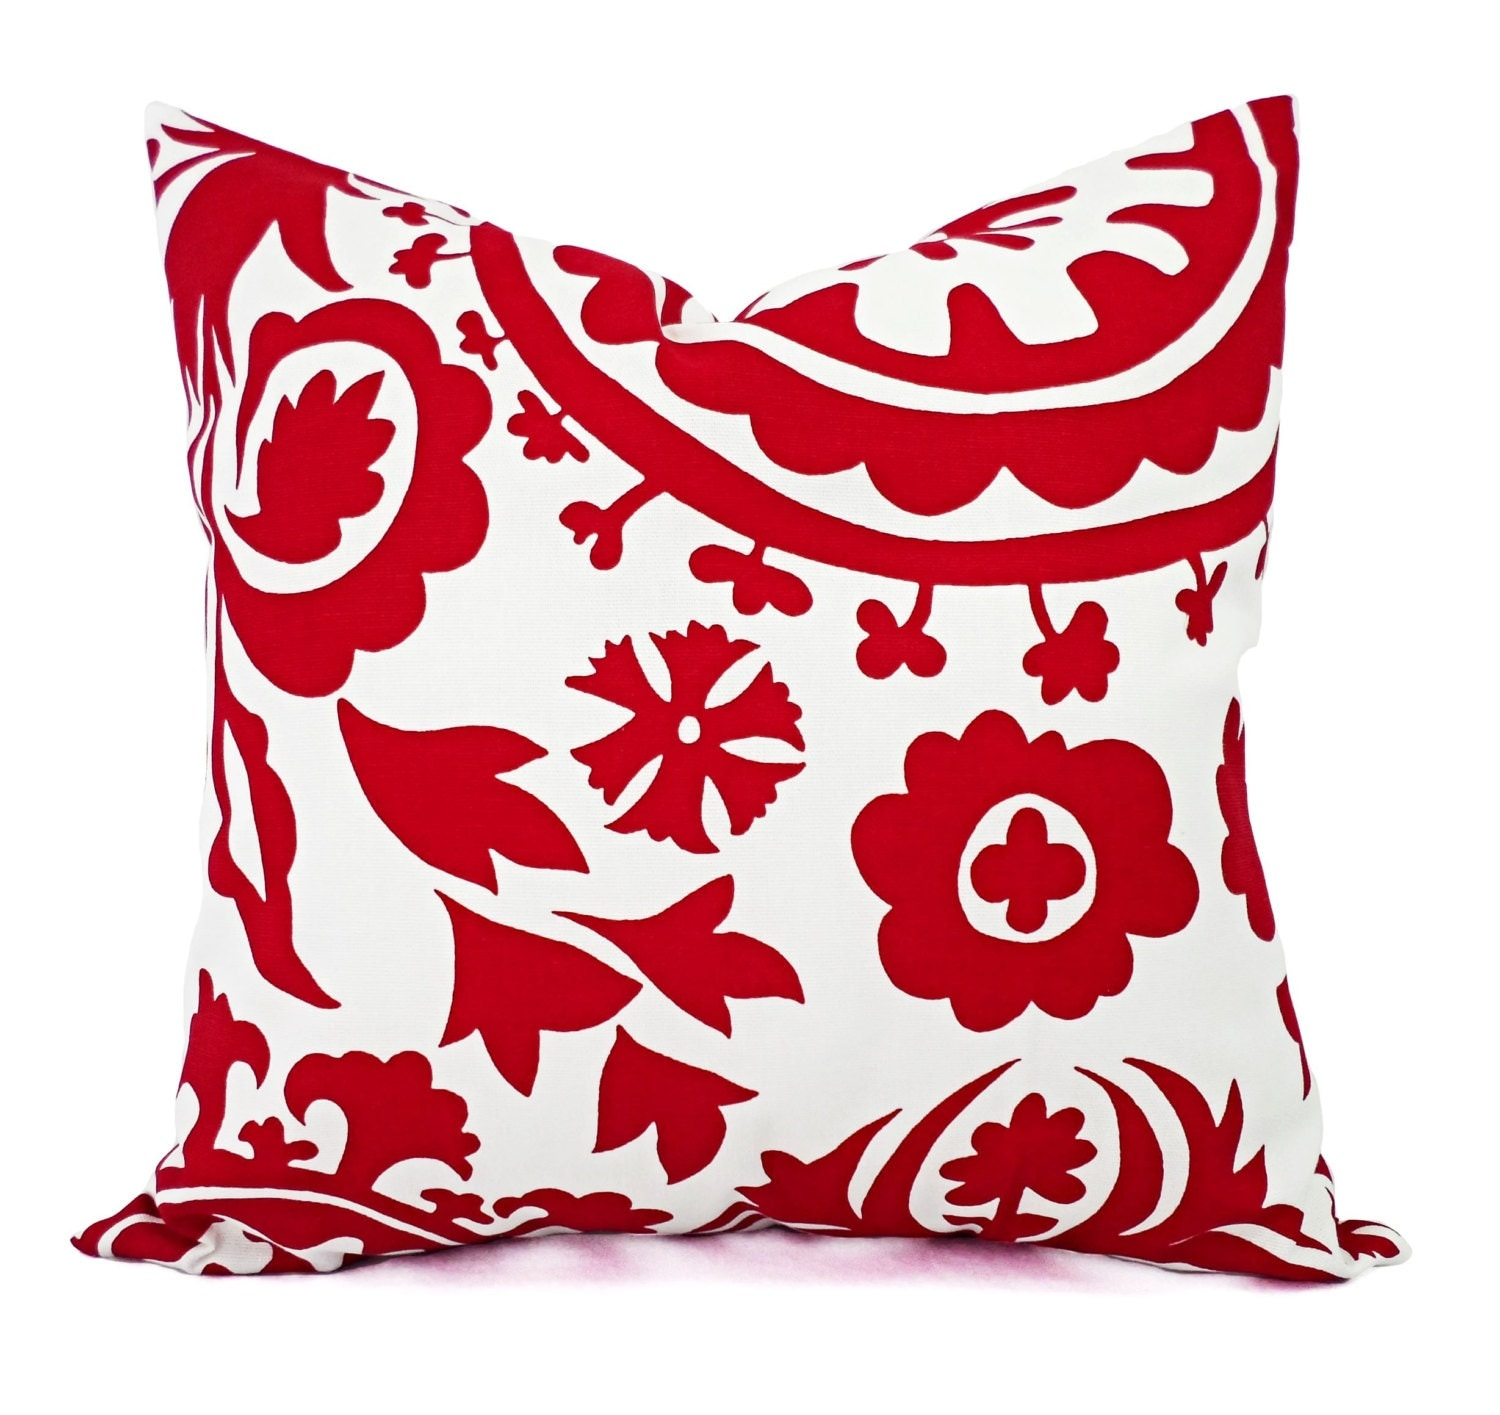 Throw Pillow Red : Two Red Pillows Red Pillow Covers Red Decorative Pillow